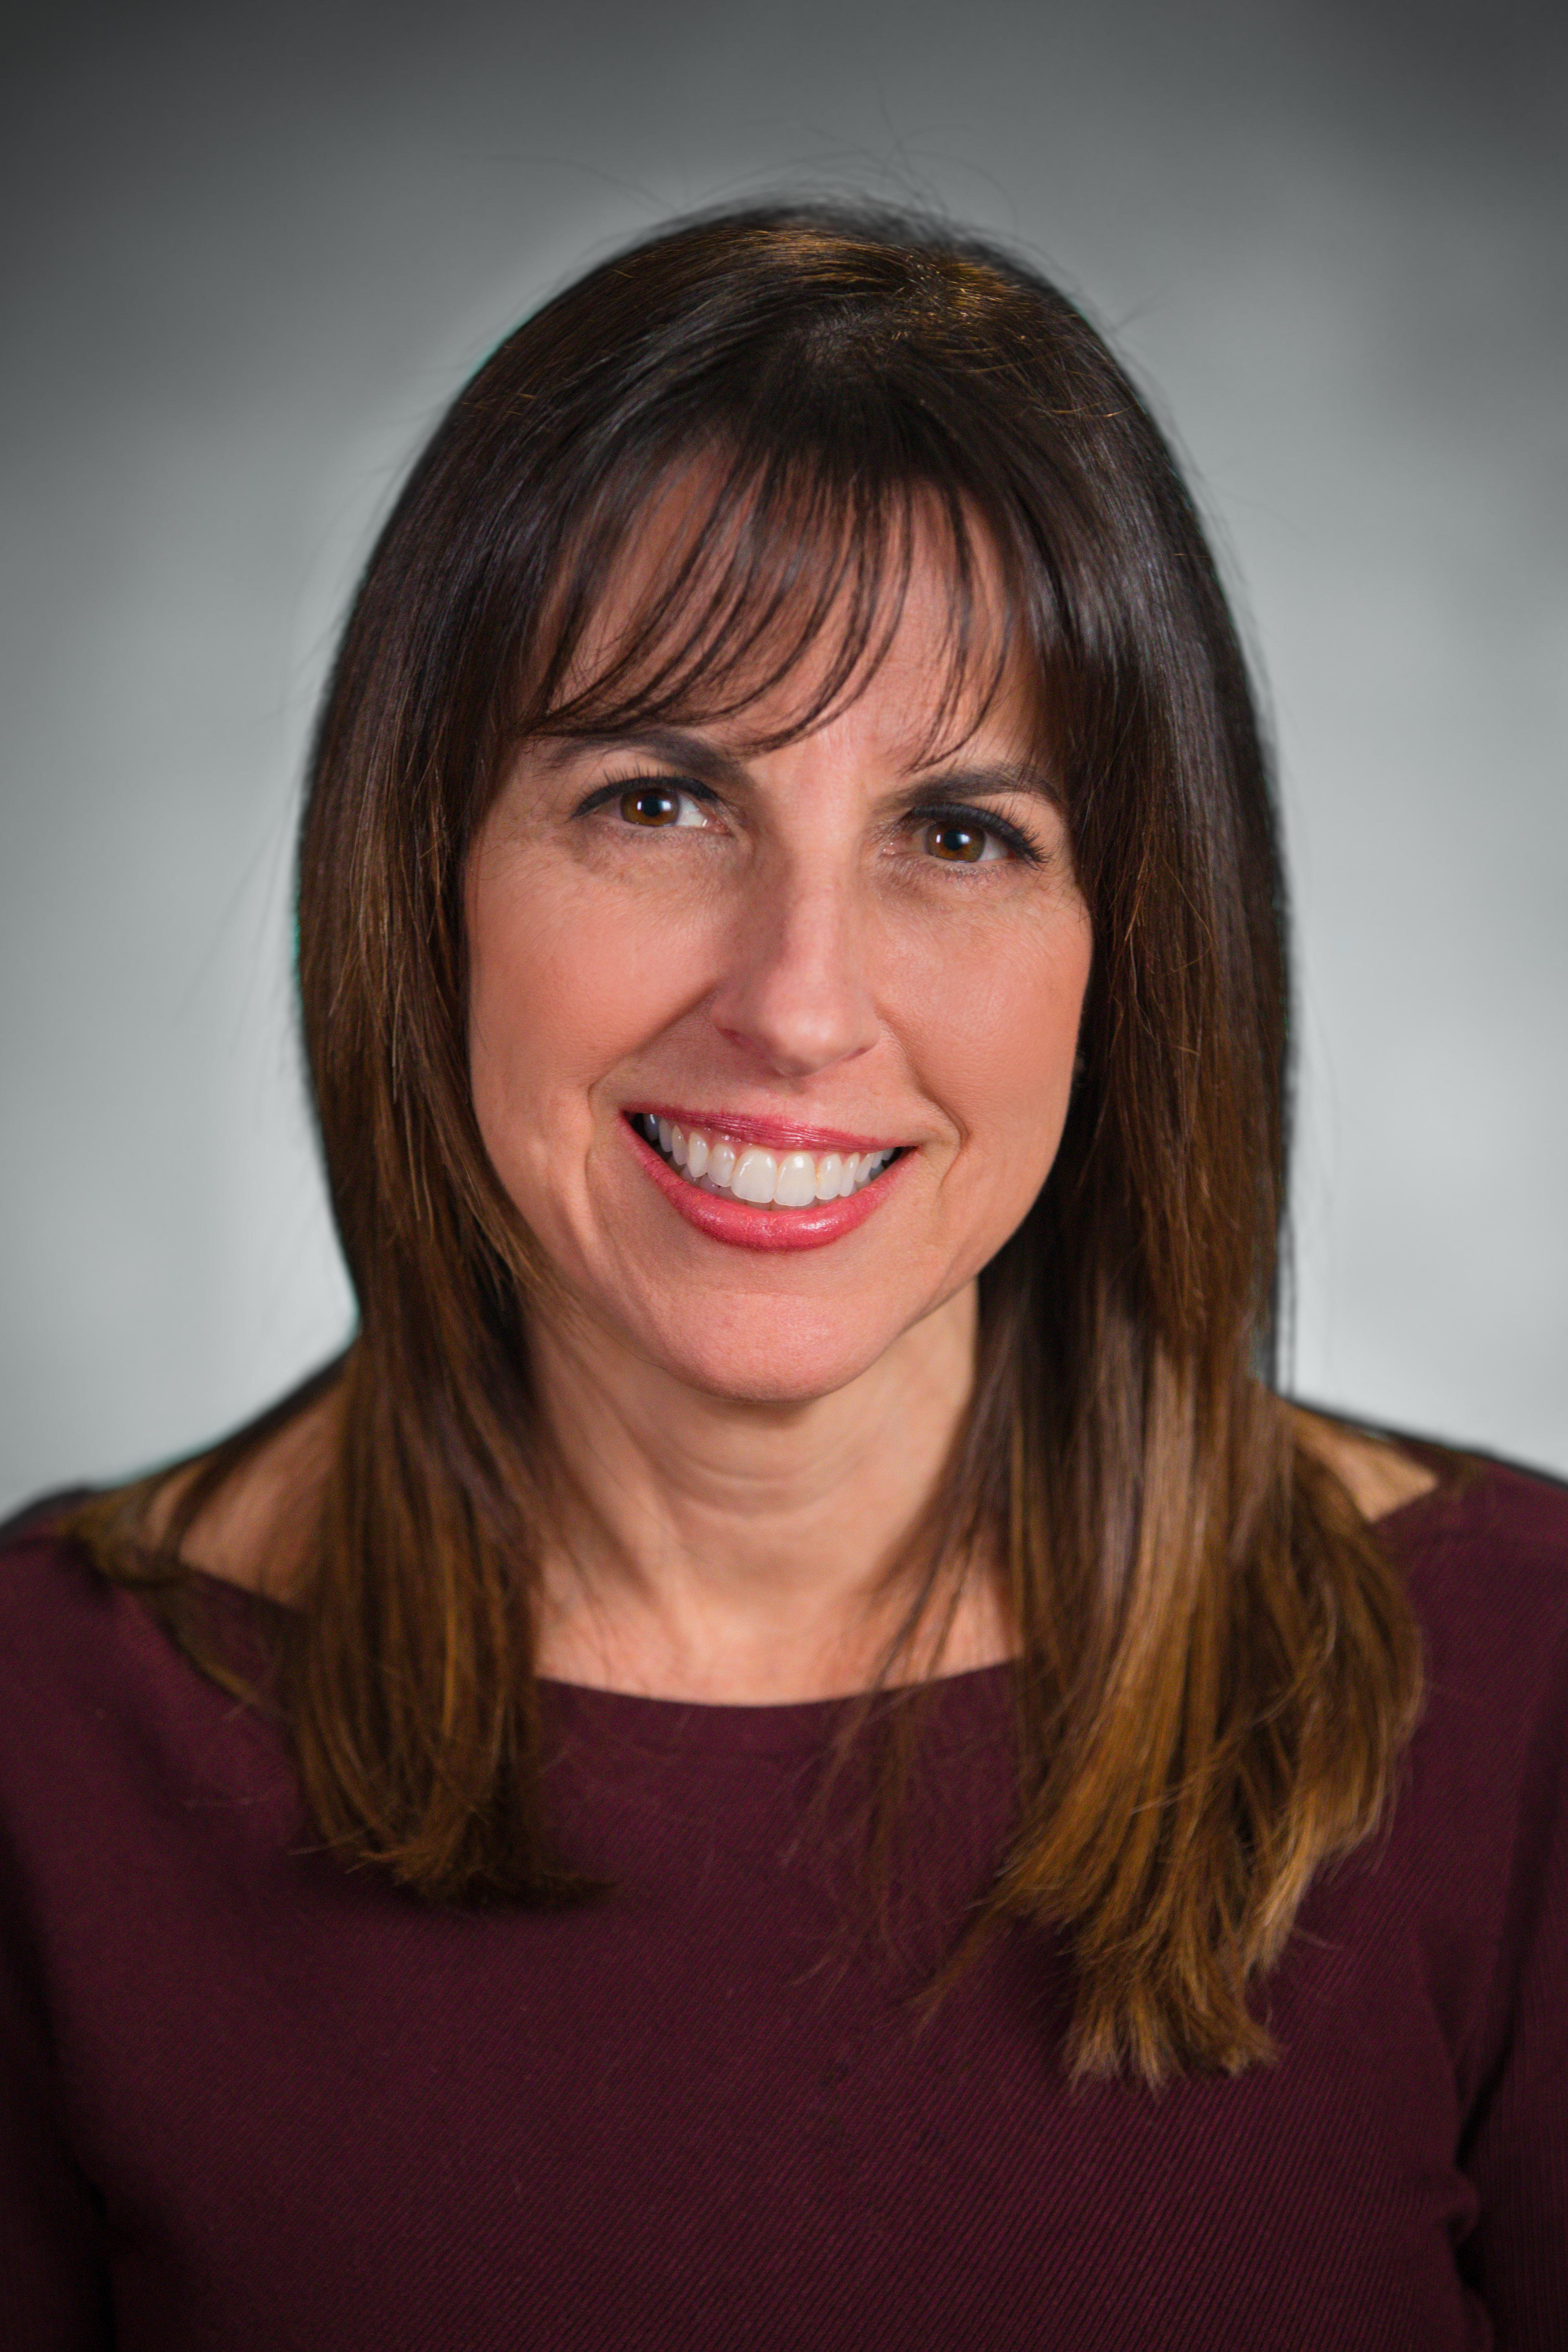 Teradata Appoints Kathy Cullen-Cote as Chief Human Resources Officer